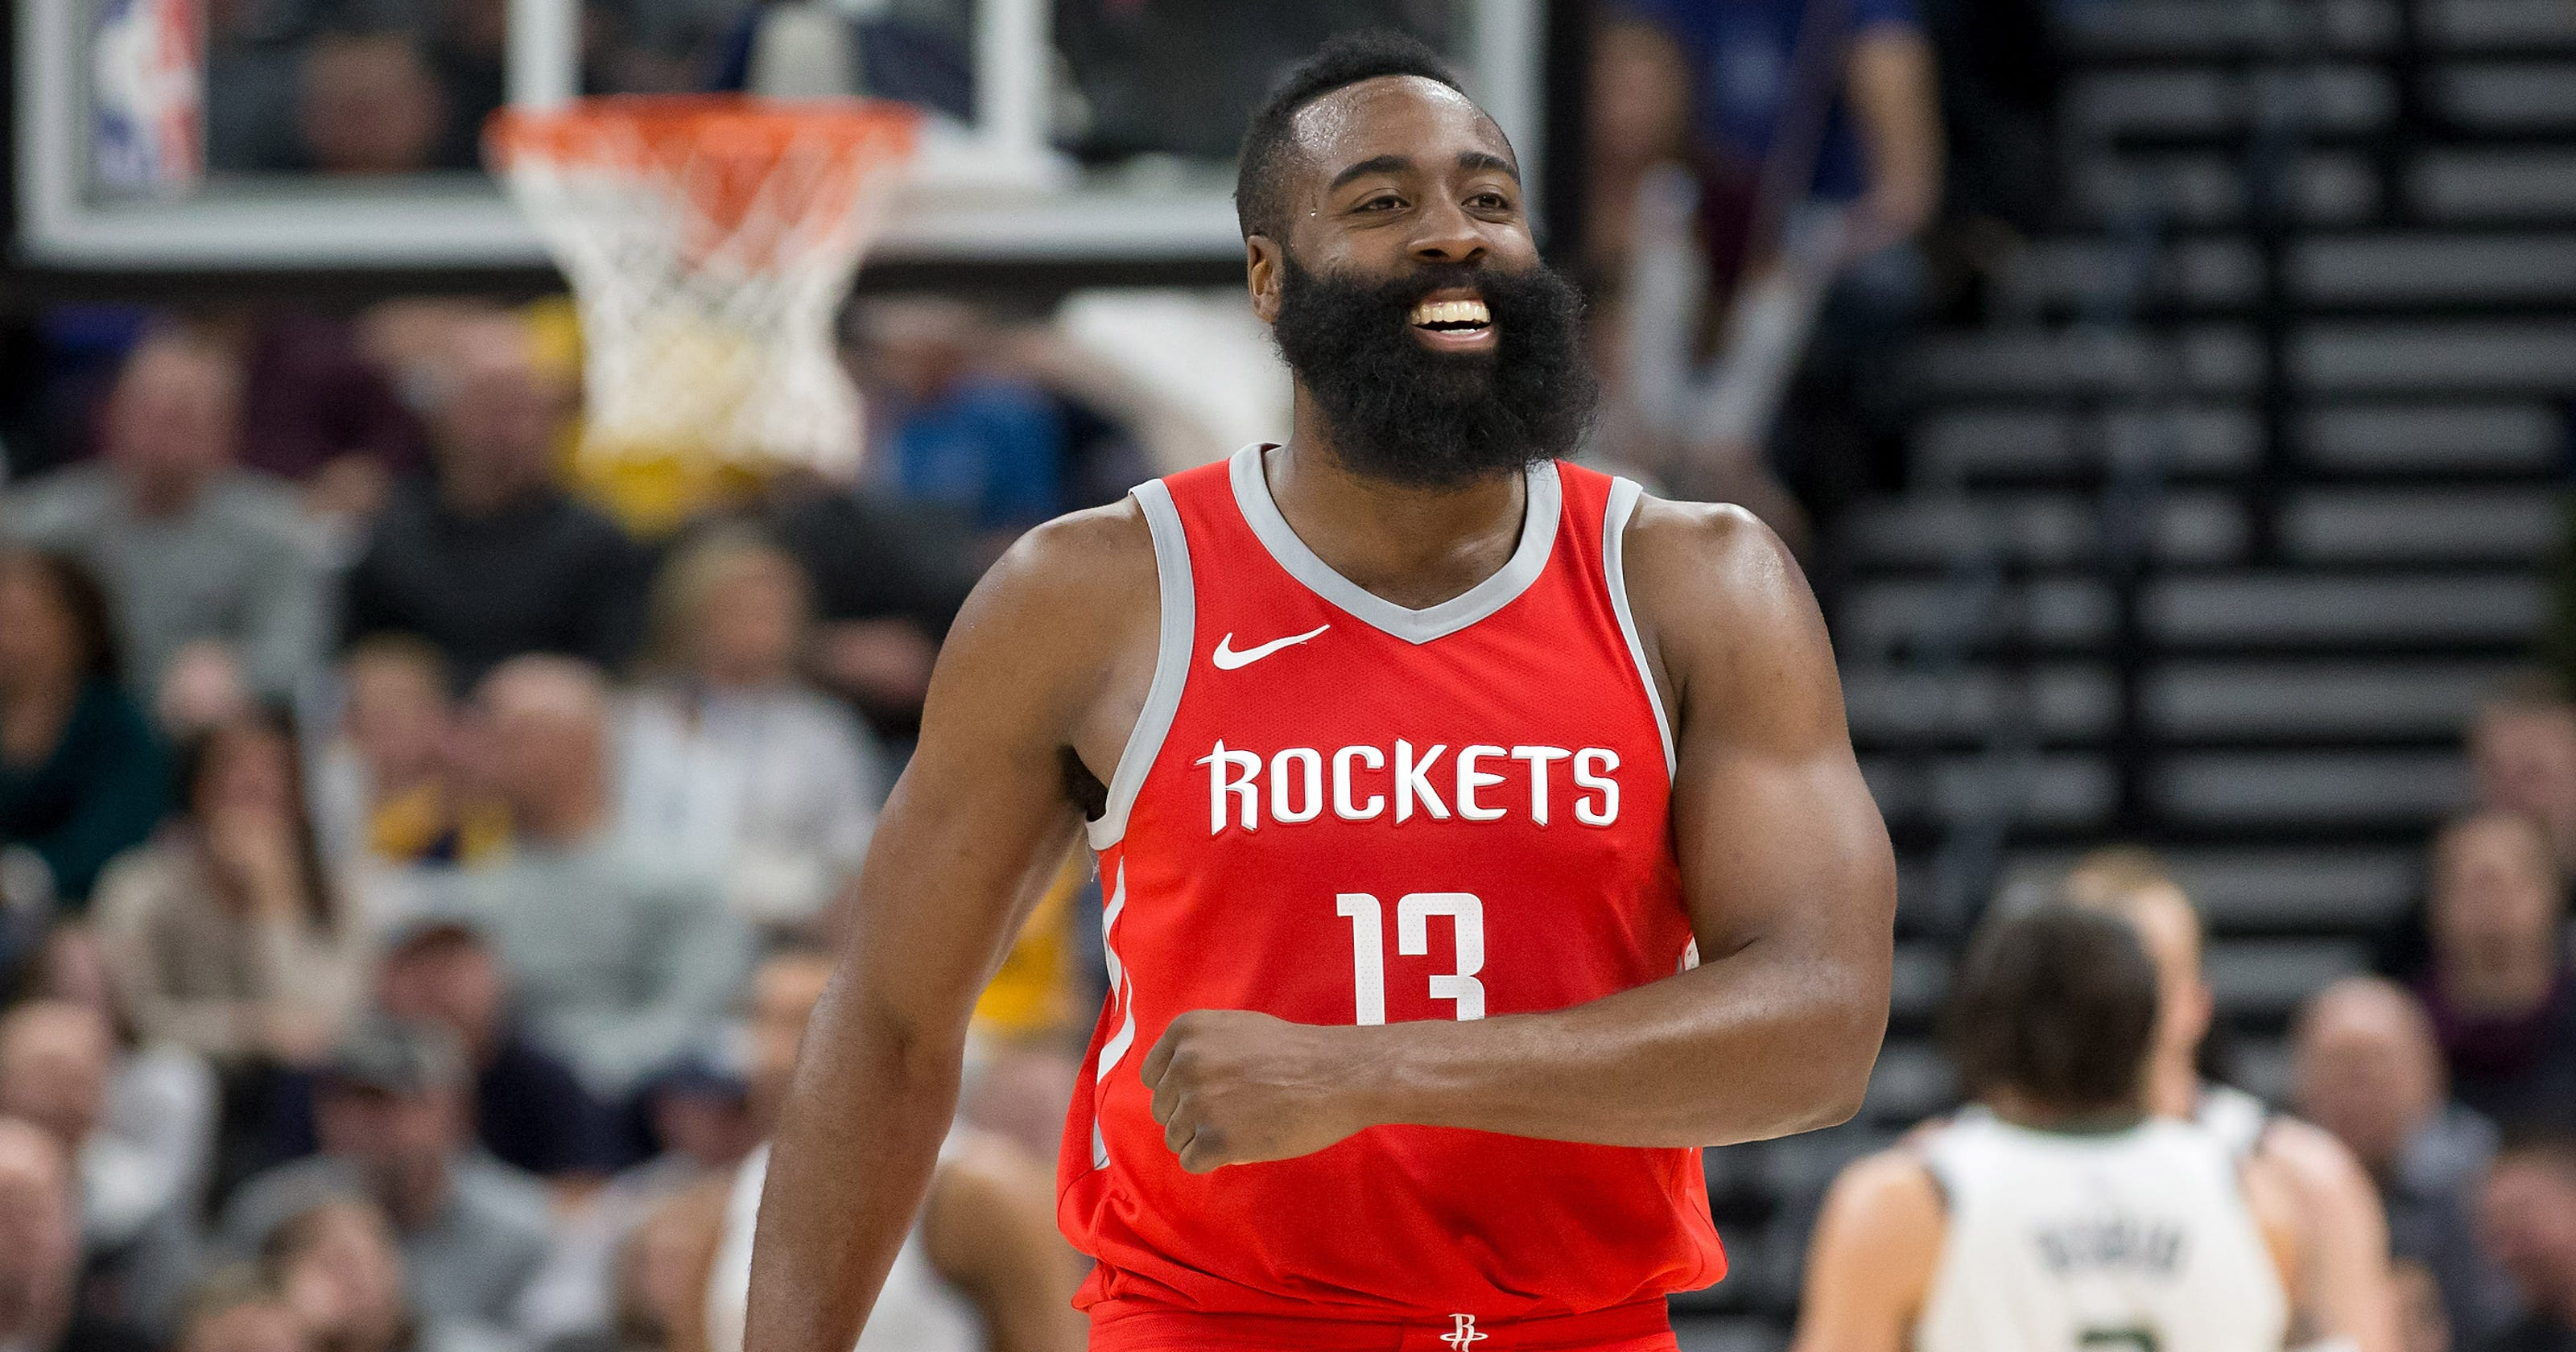 46f62eb1d7a James Harden   This is the year  Rockets win NBA championship